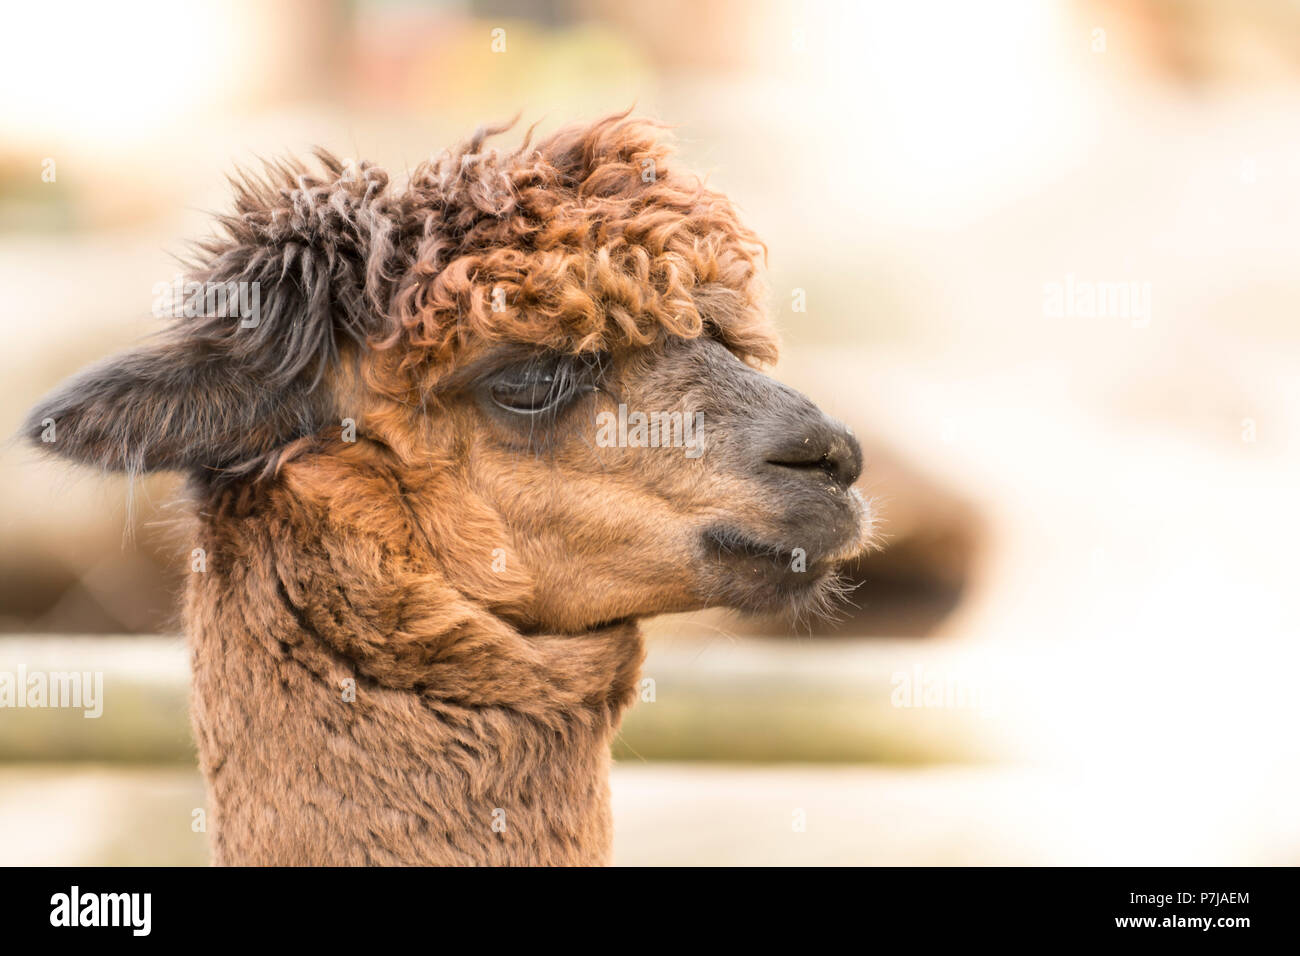 A side portrait of a Suri alpaca with crinkled coat hair. Copy Space - Stock Image